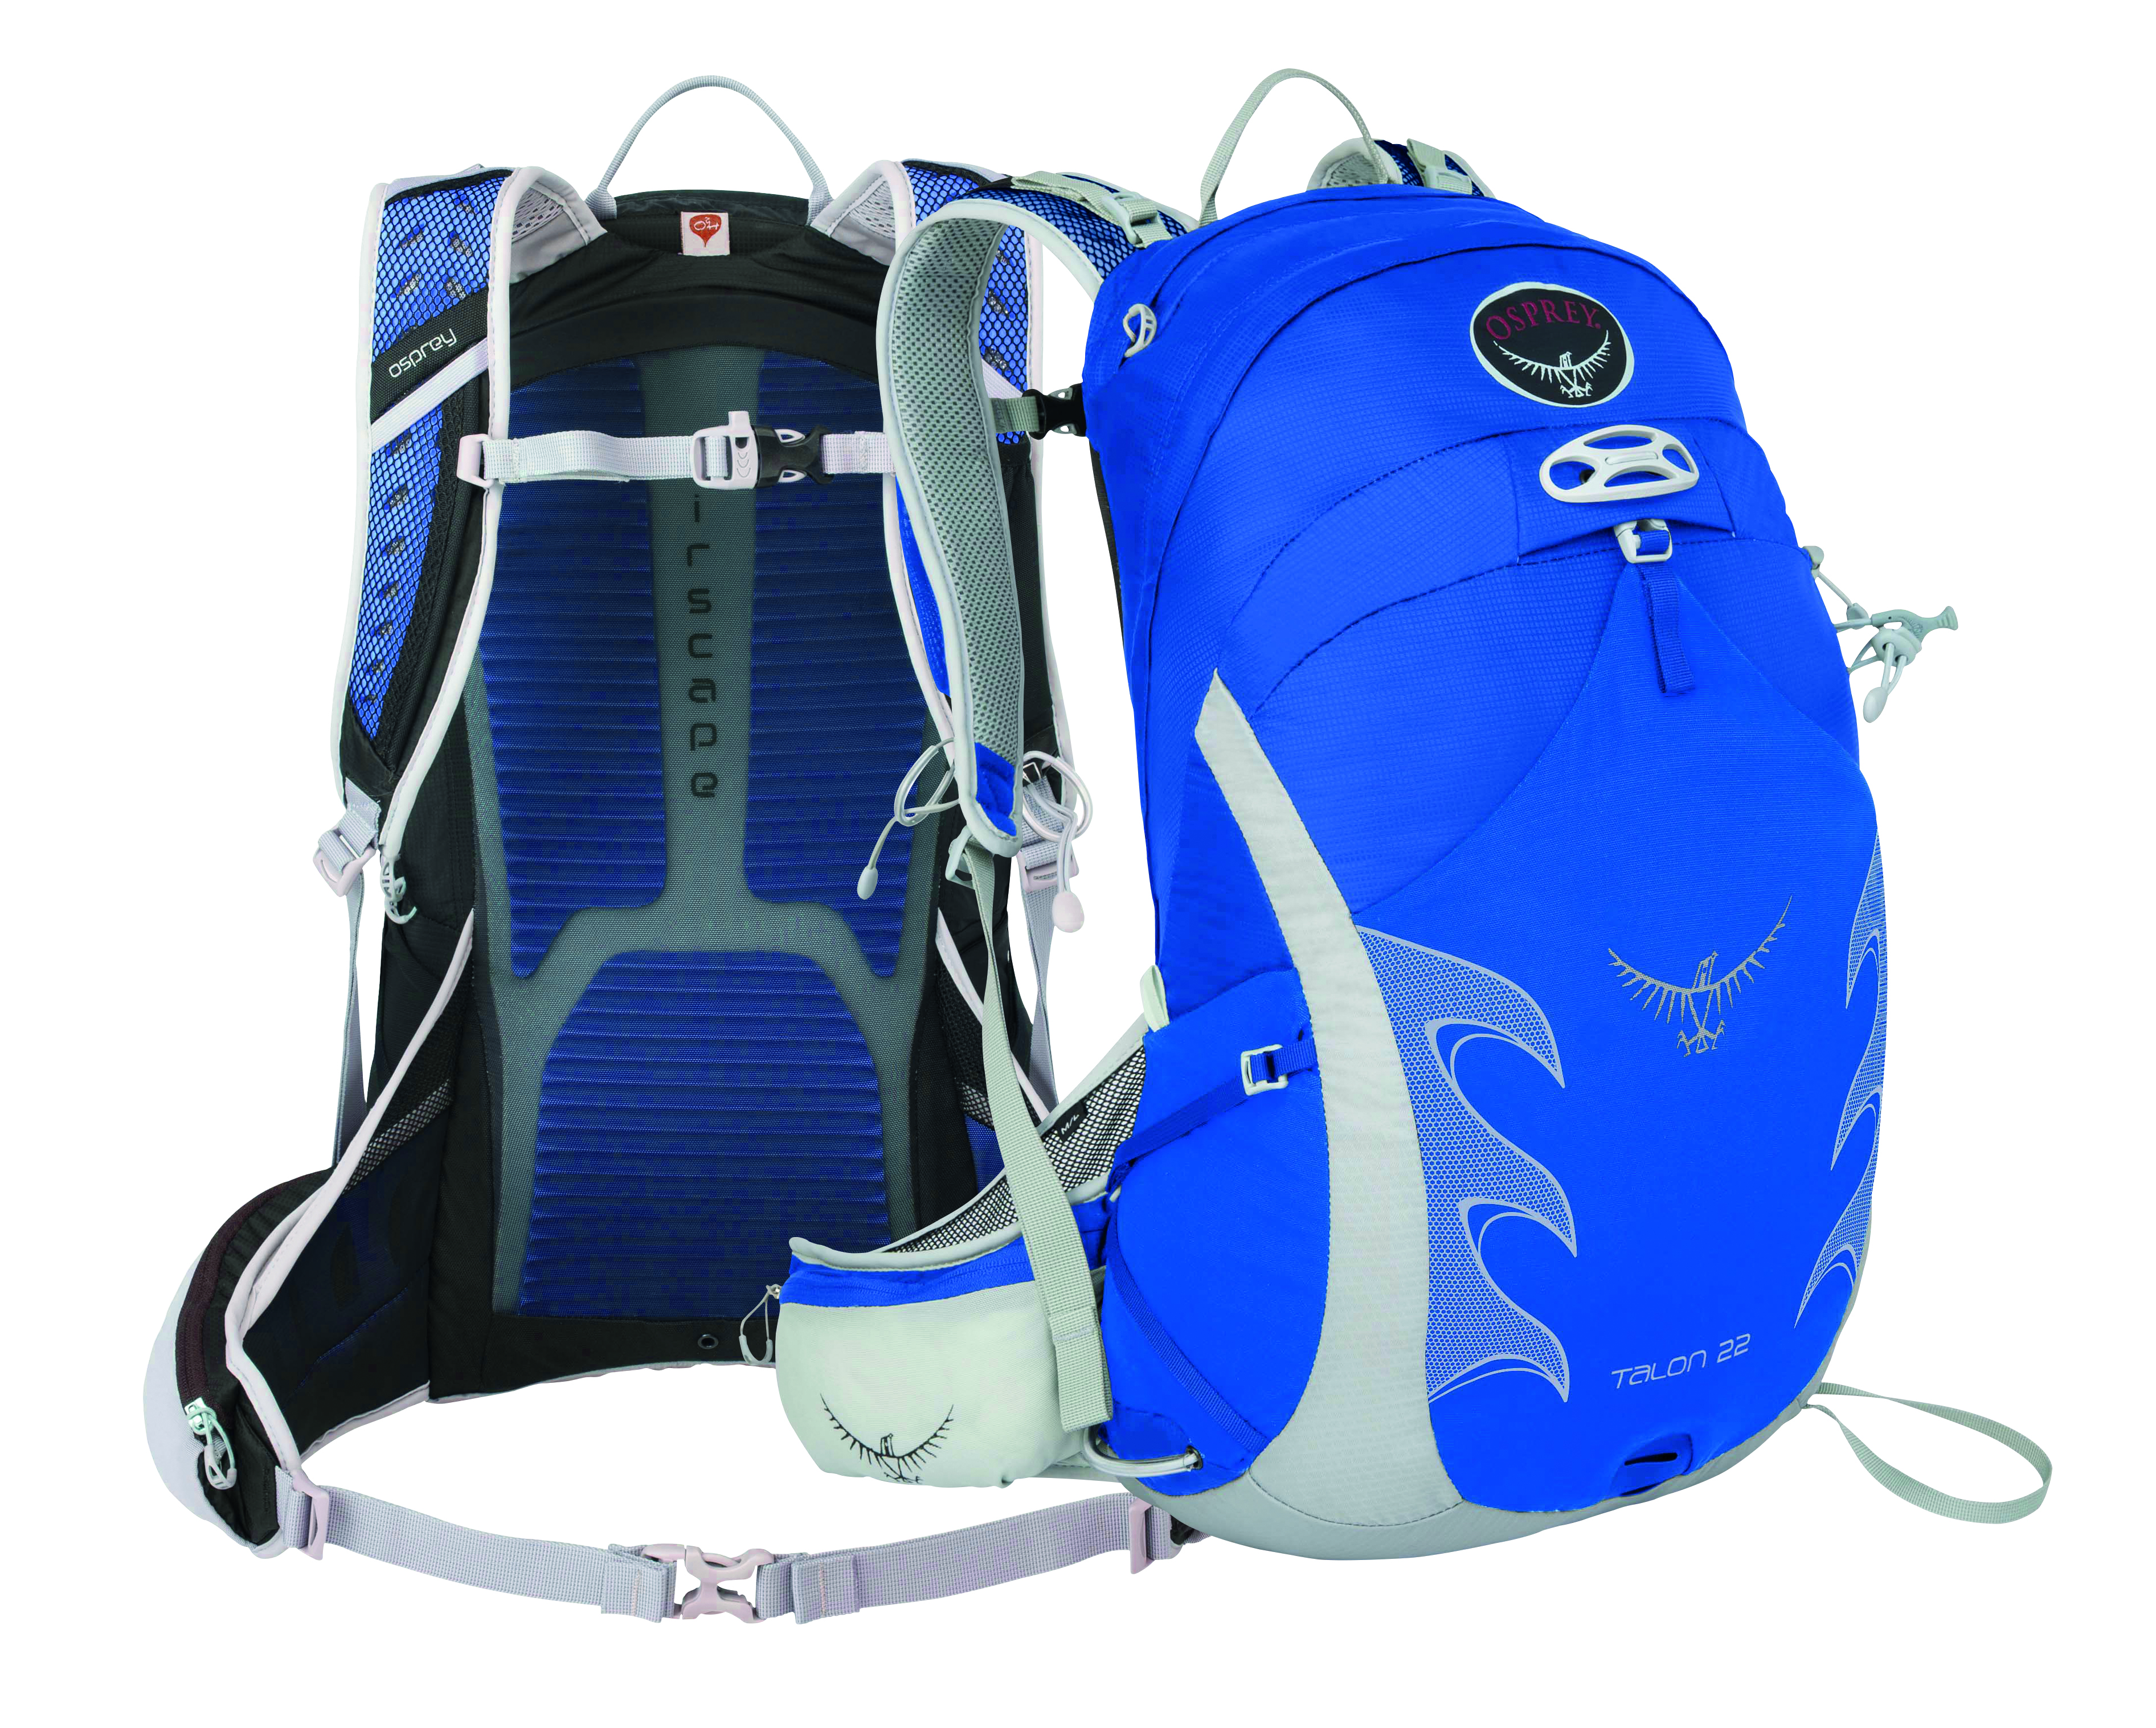 Talon and Tempest rucksacks from Osprey